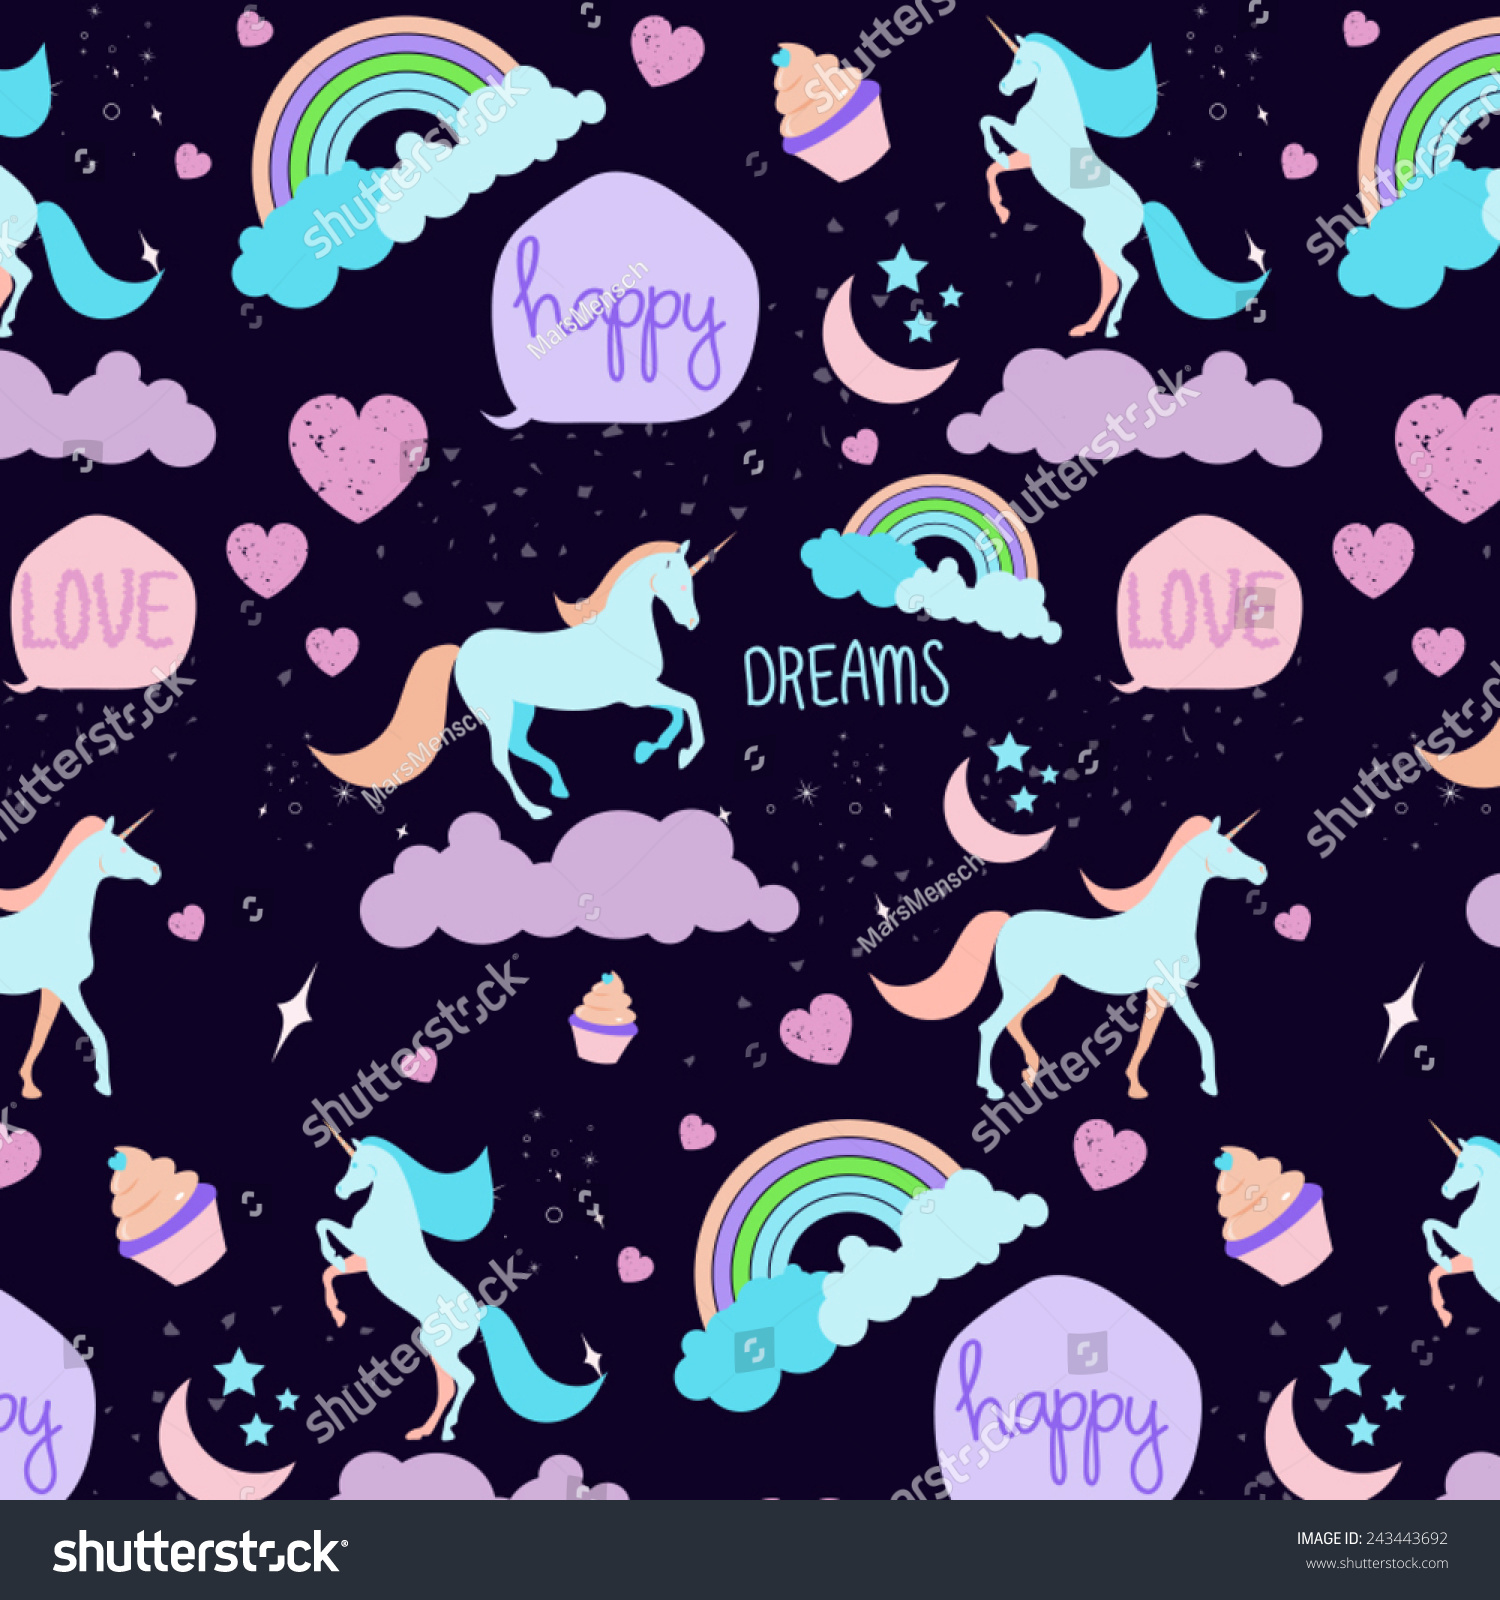 Cute Cartoon Horse Wallpaper Seamless Unicorn Pattern Stock Vector 243443692 Shutterstock